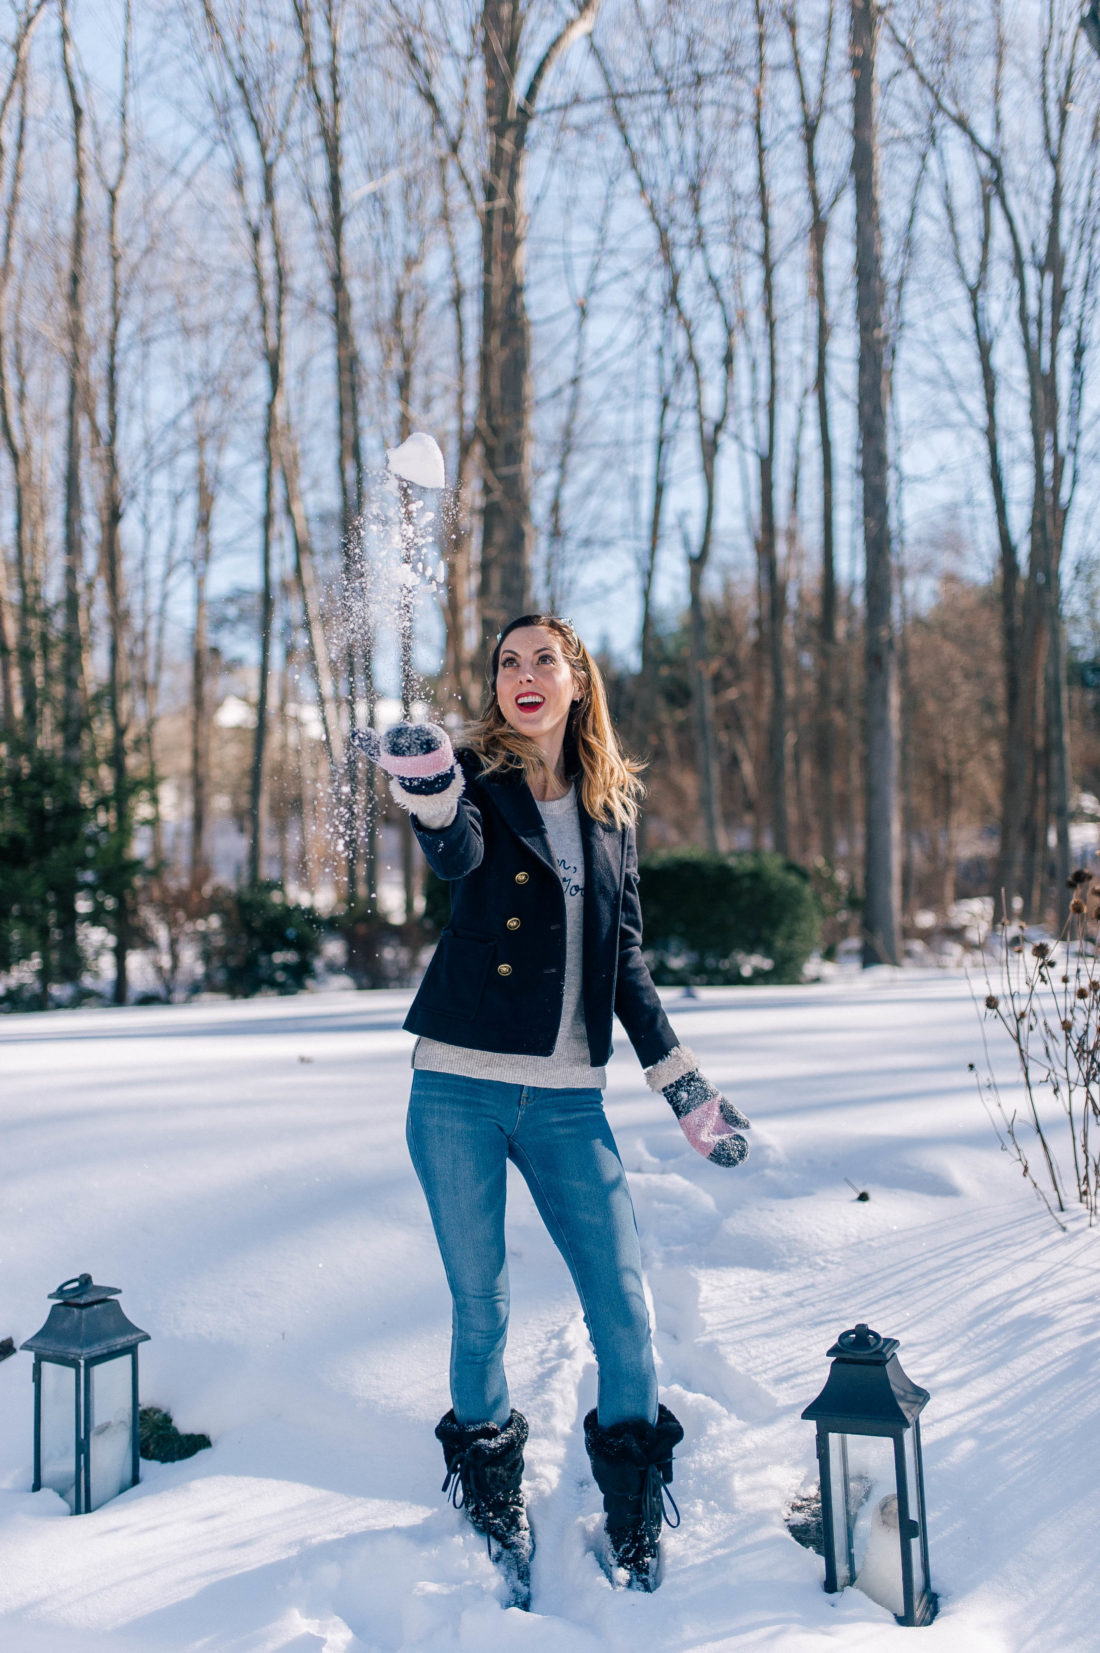 Eva Amurri Martino throws a snowball in to the air in the snowy yard outside her Connecticut home